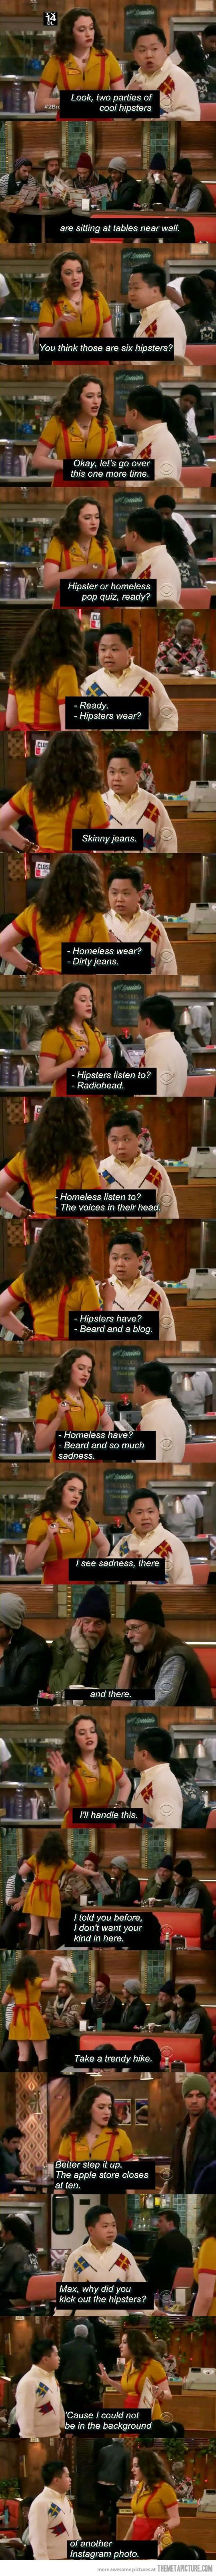 Hipster or Homeless? HAHAHA I don't watch this show but this is awesome